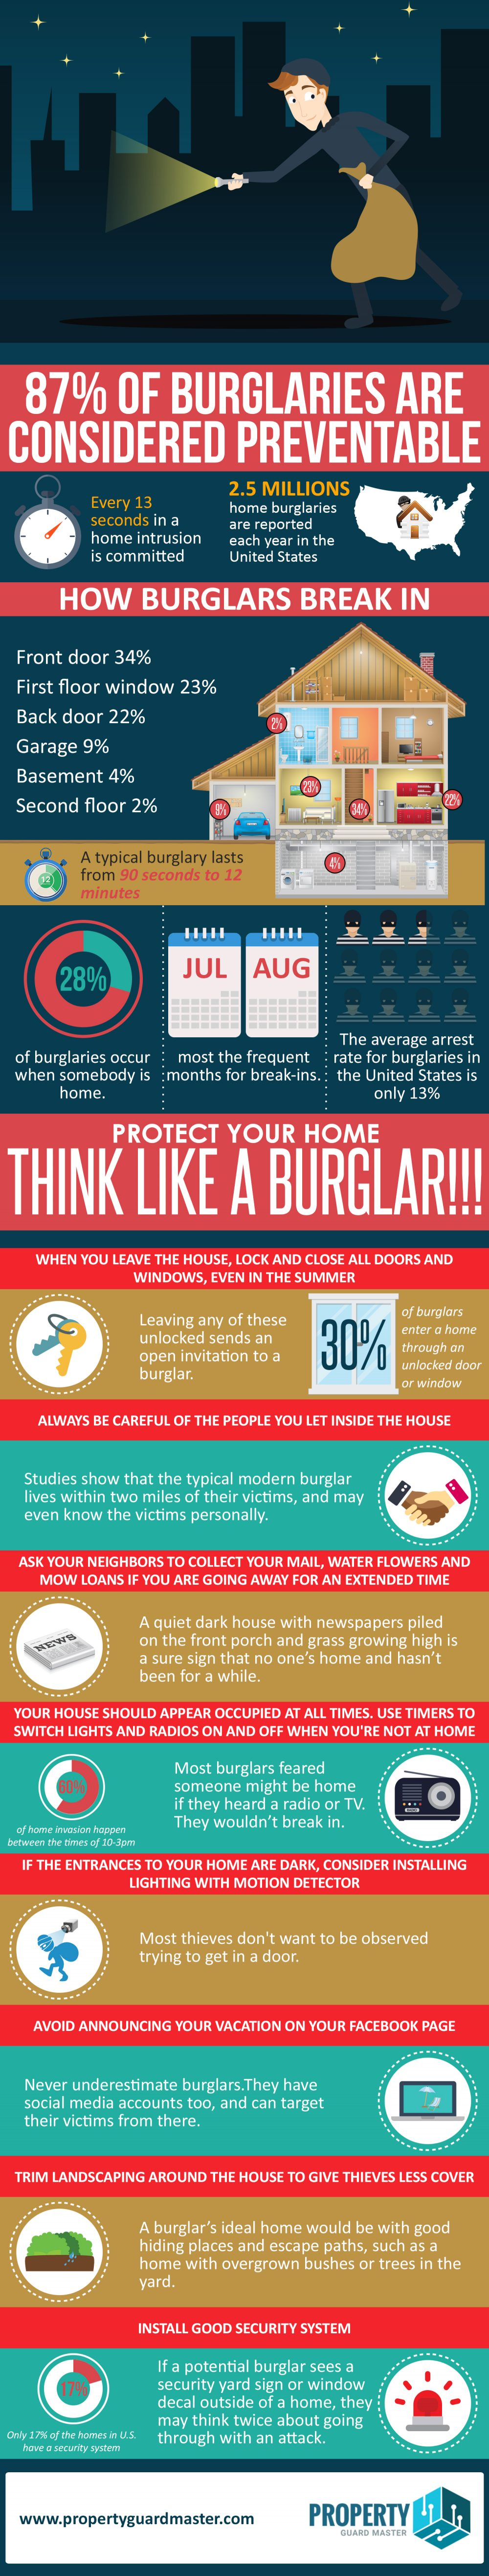 Protect Your Home: Think Like A Burglar